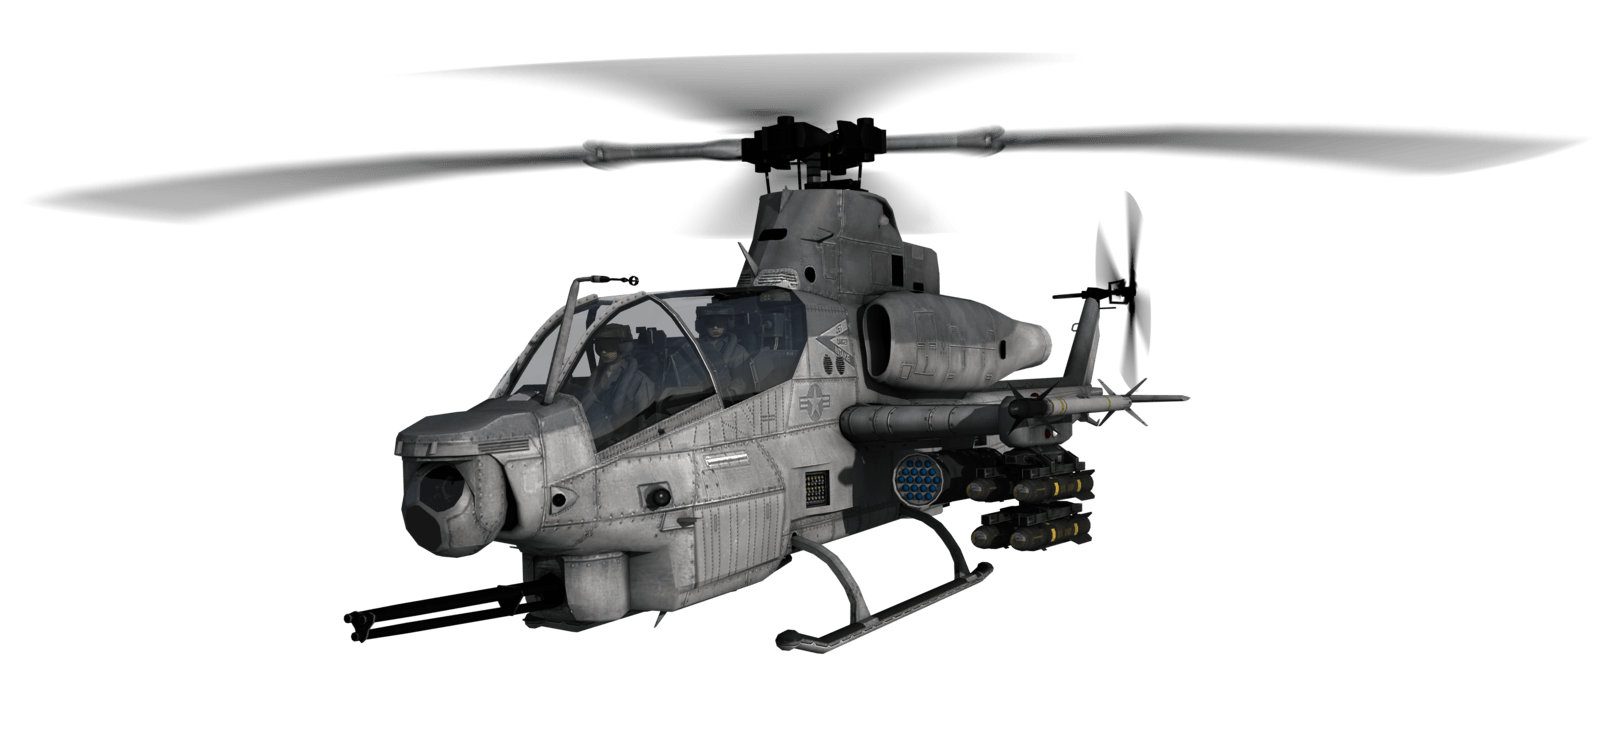 Illustration Army Helicopter - Army Helicopter, Transparent background PNG HD thumbnail